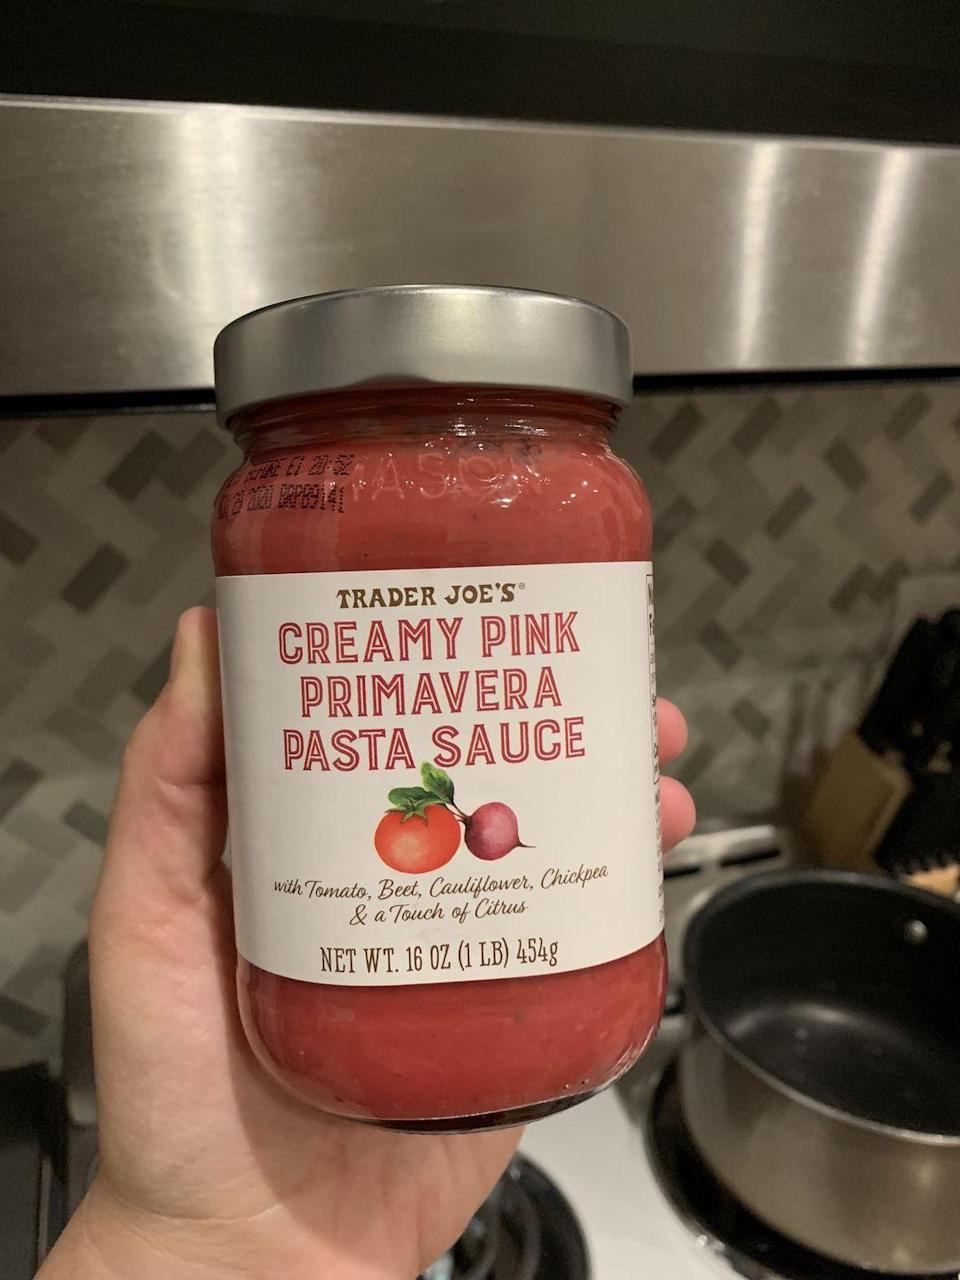 <p>If you're looking for a new, healthier pasta sauce option, this pretty pink sauce is made with a mix of tomatoes, beets, cauliflower, and chickpeas. Half a cup (the suggested serving size) has 130 calories, 3 grams of protein, and 6 grams of sugar.</p>